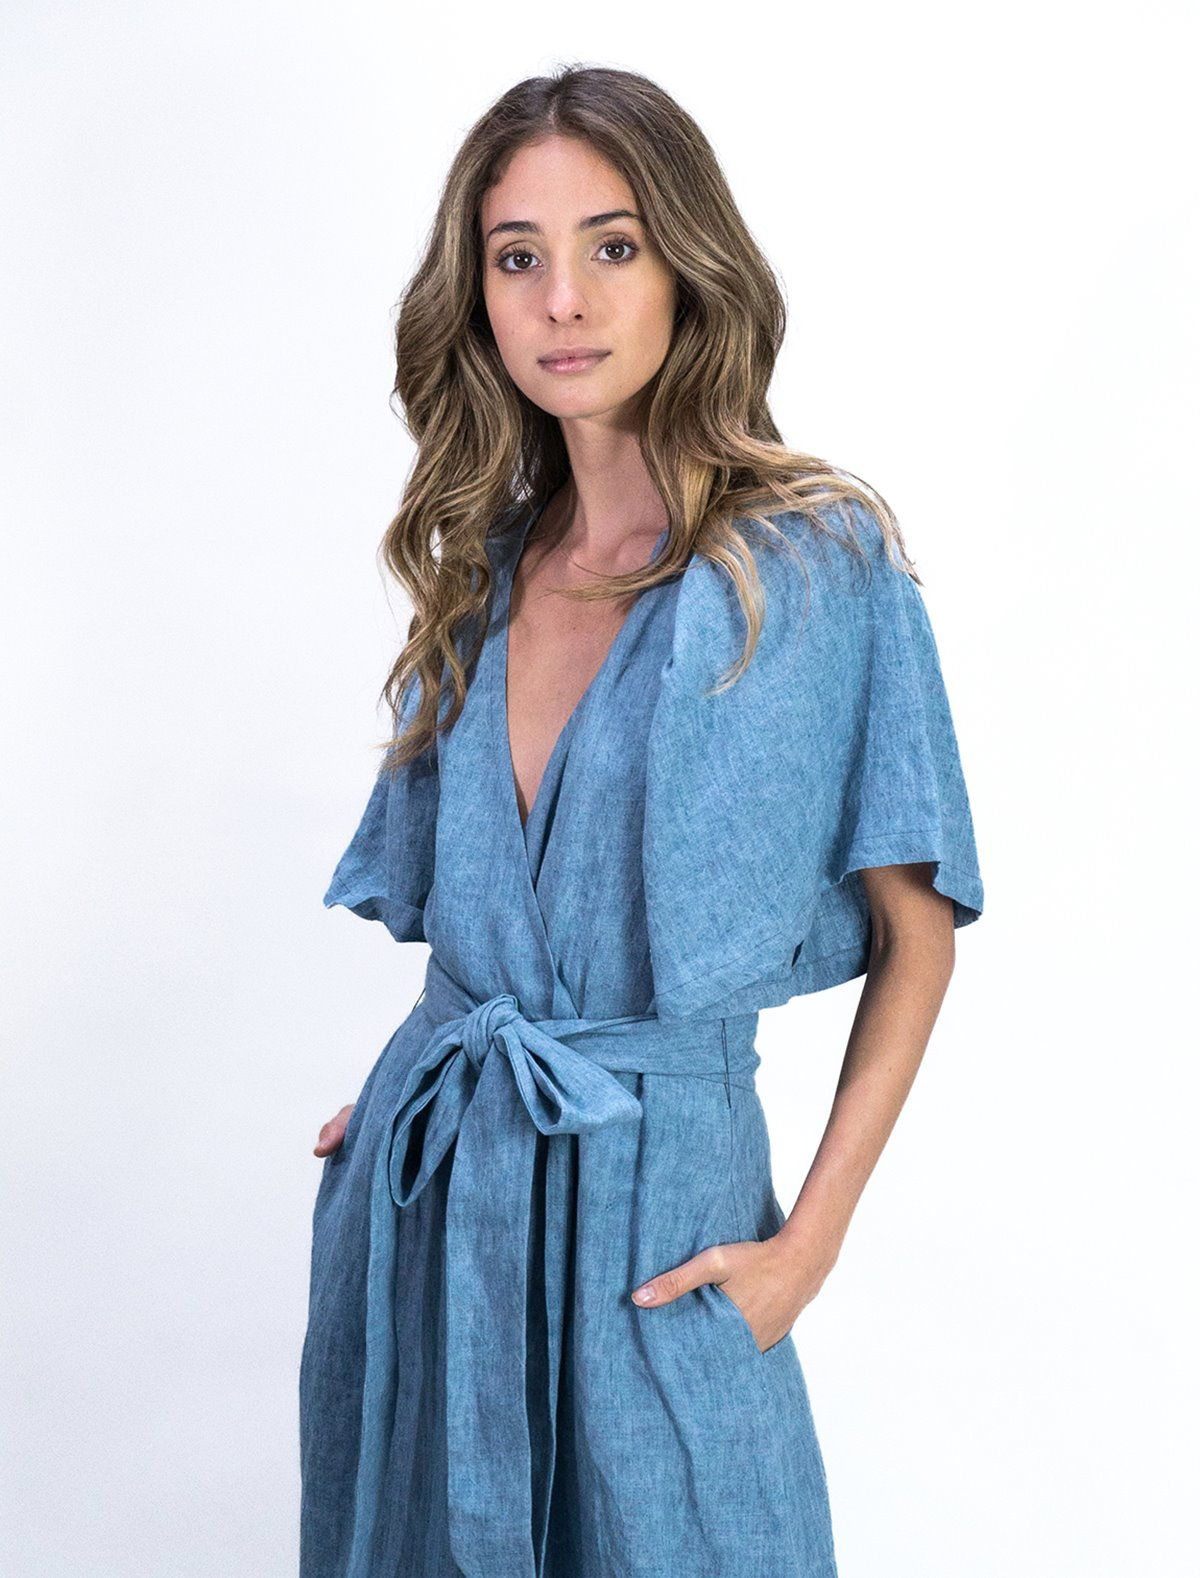 Looks - Blue Ocean dress pictures video